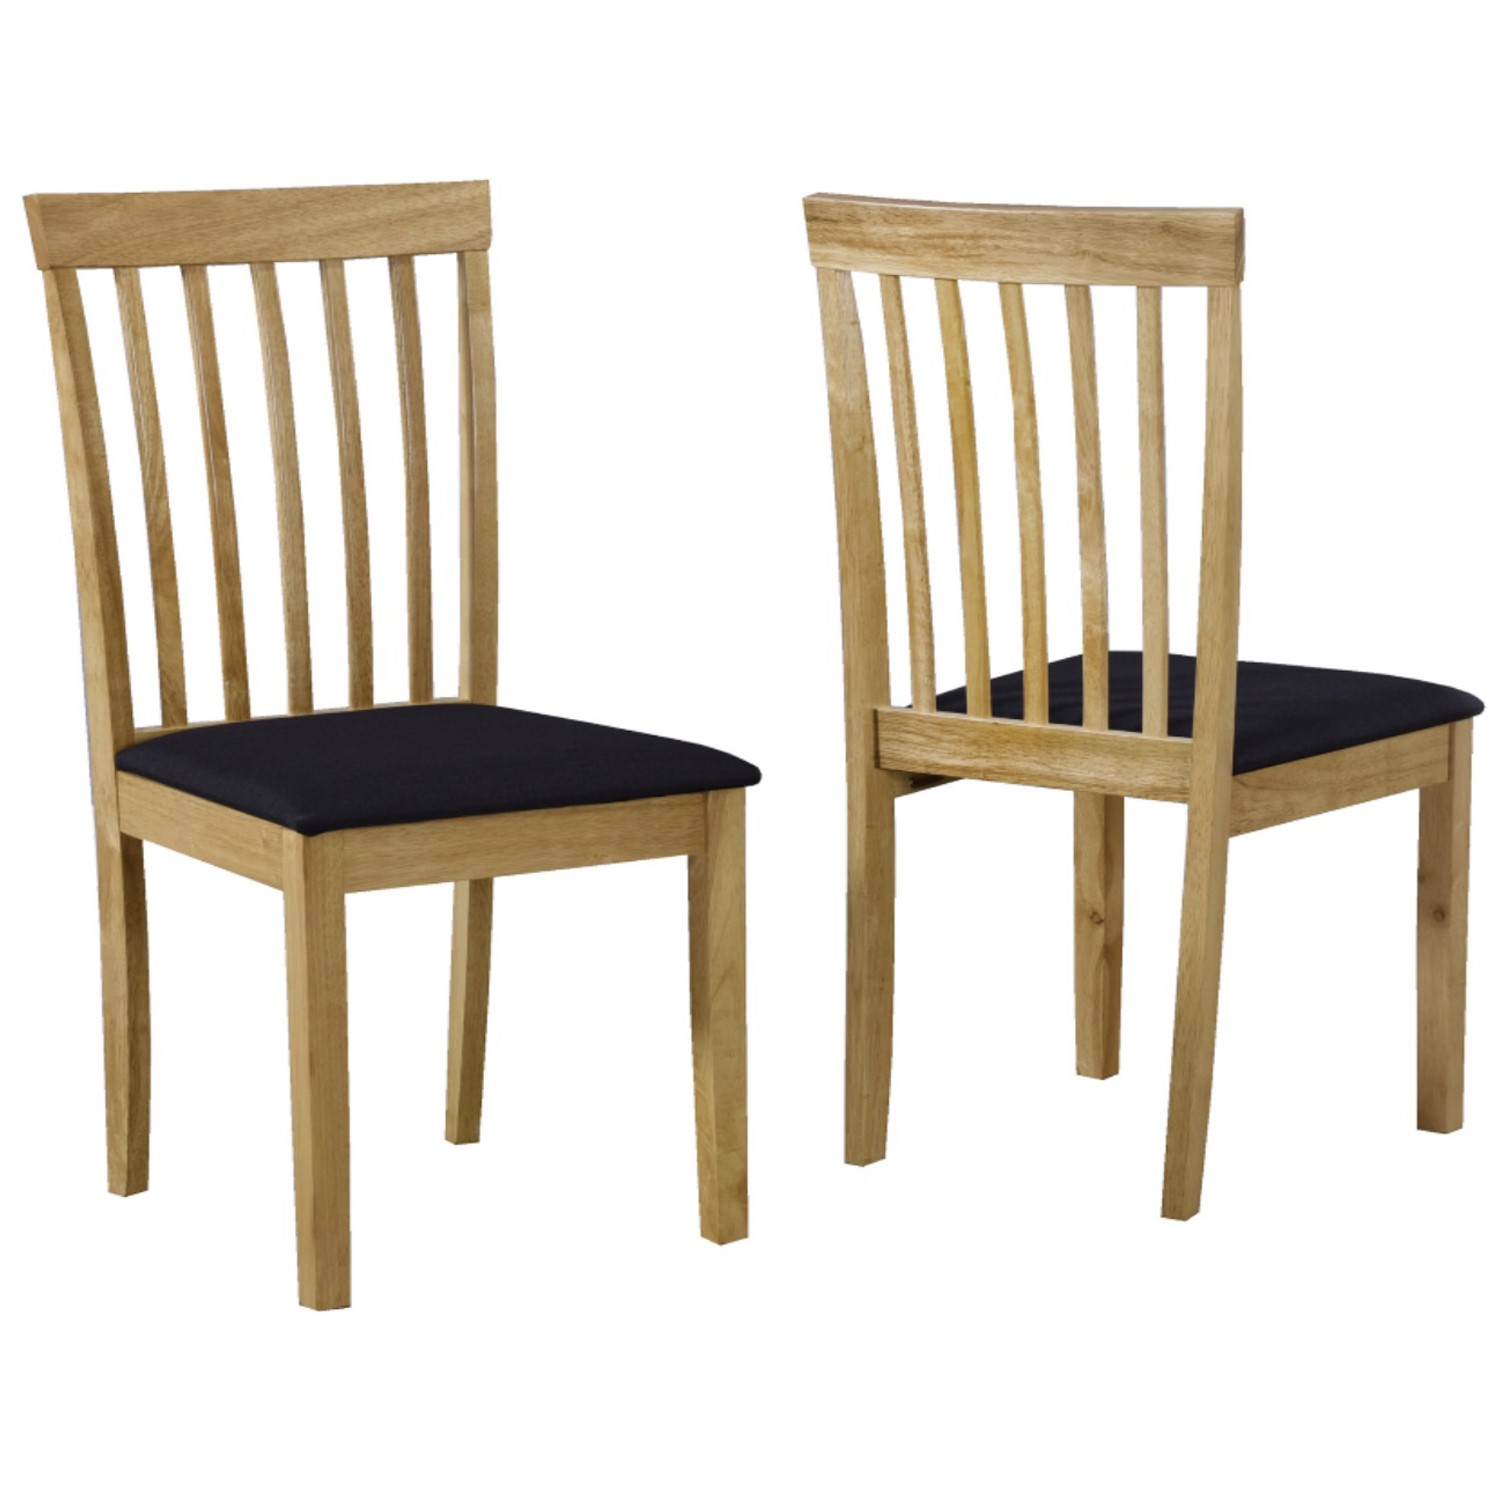 Slatted Pair of Dining Chairs in Black